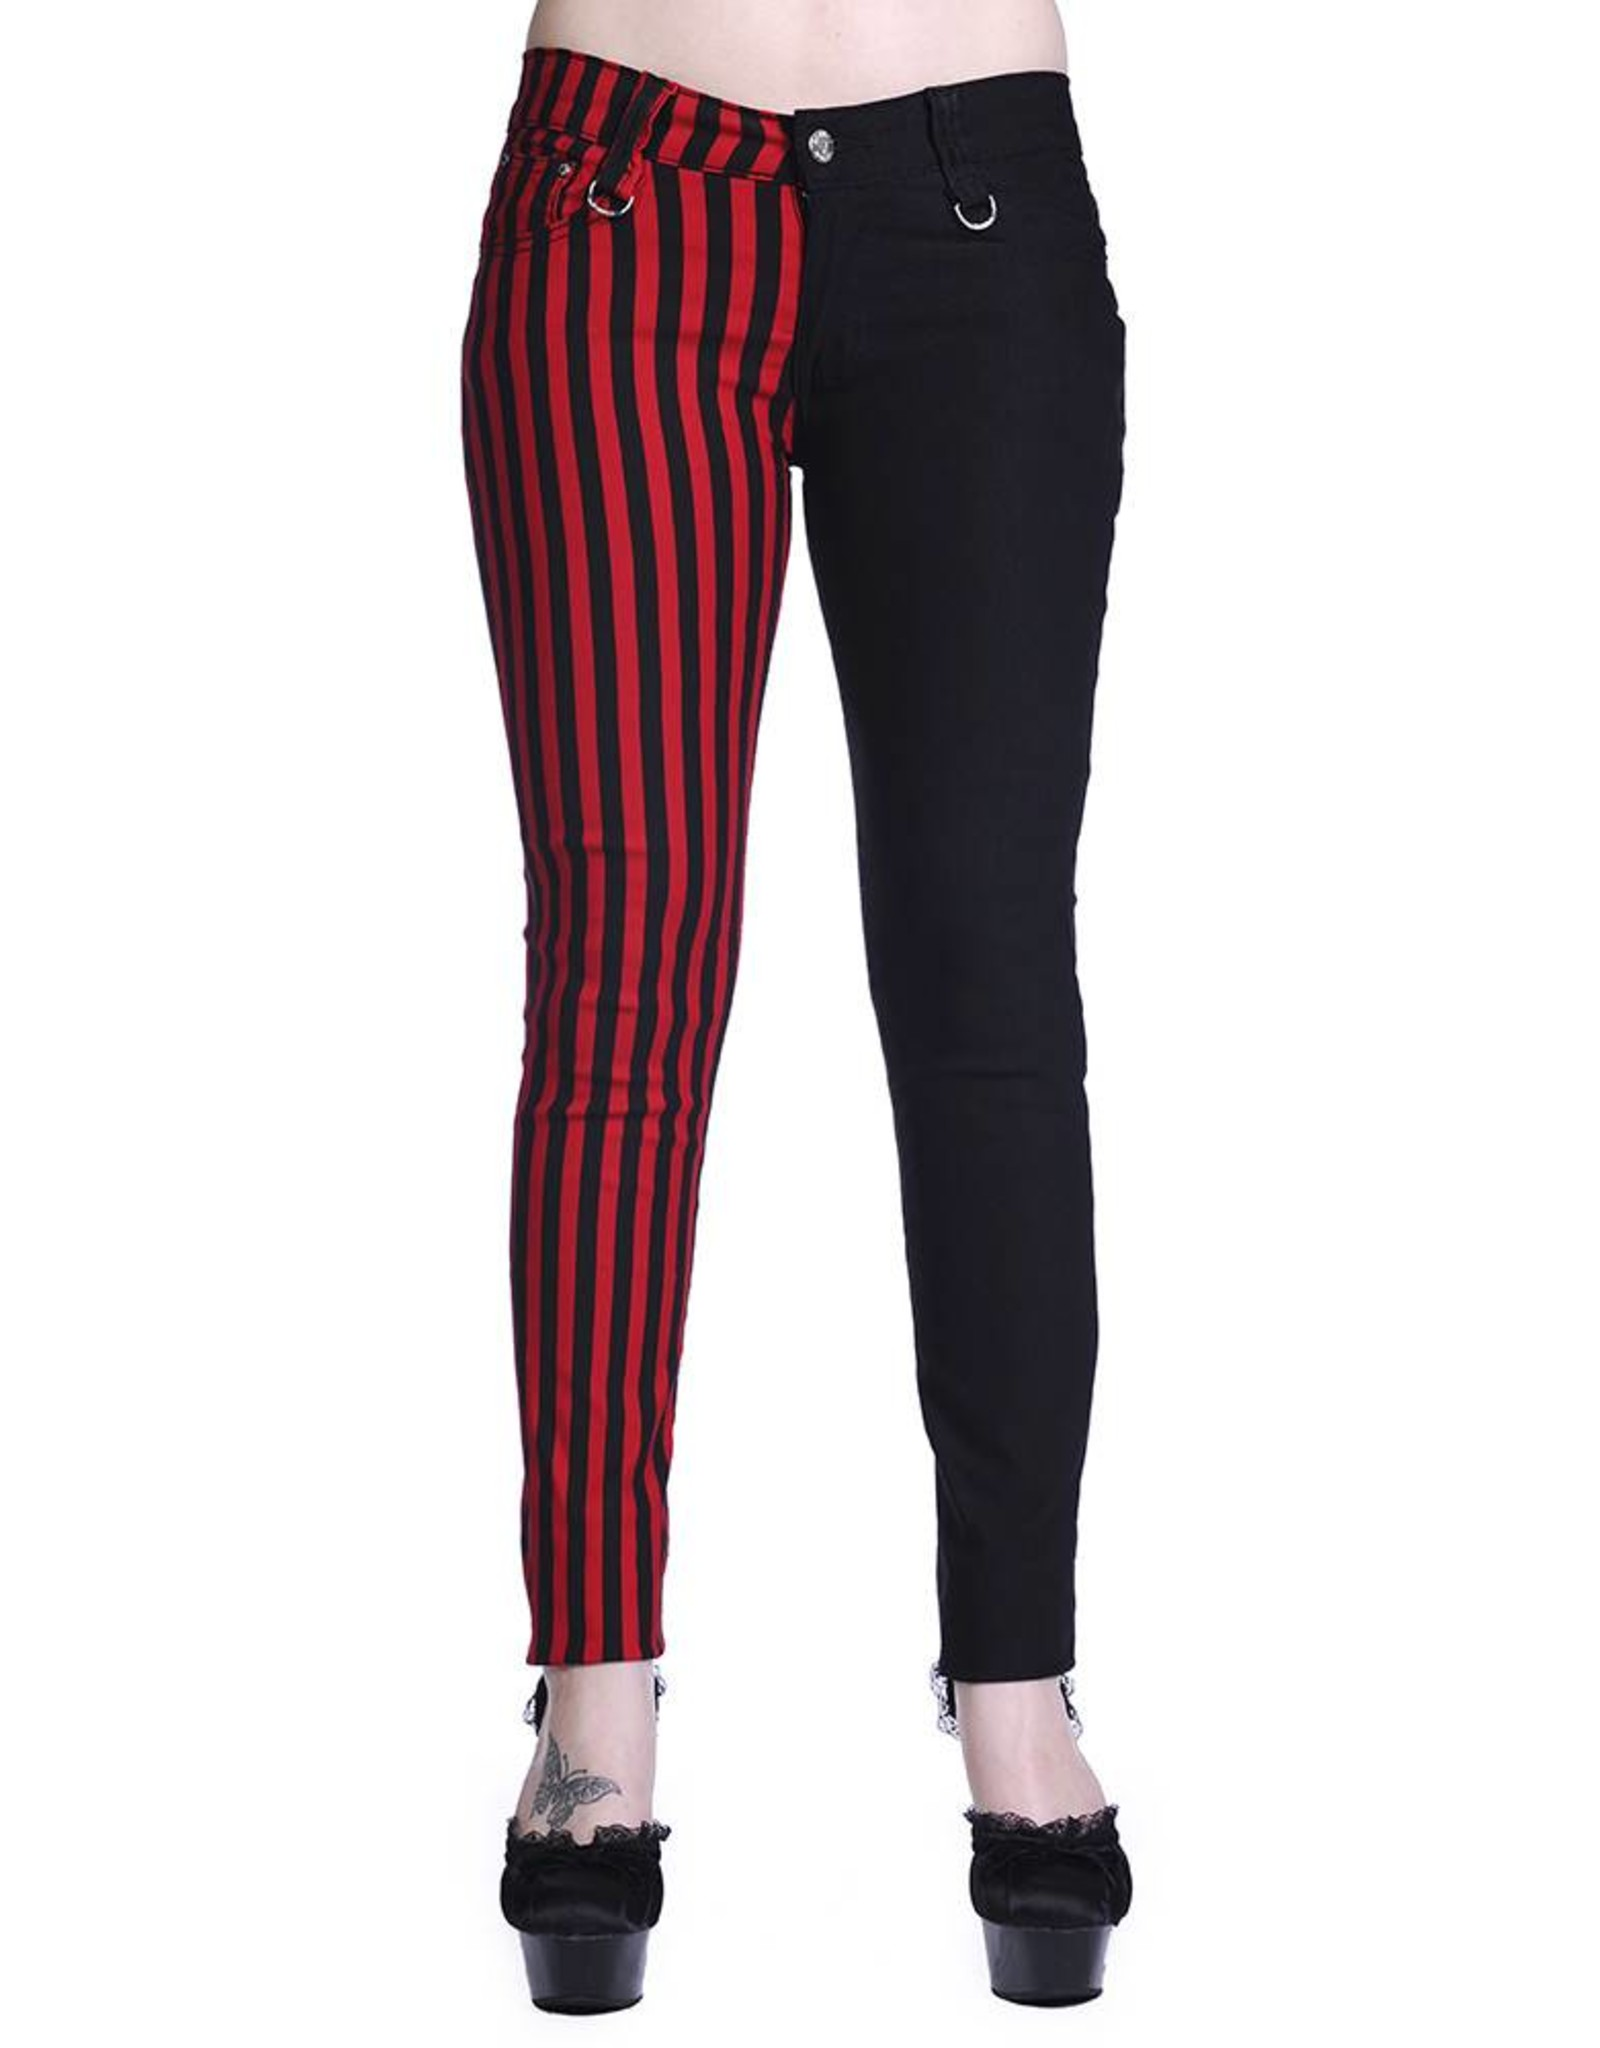 BANNED BANNED - Half Black/Striped Red Pants